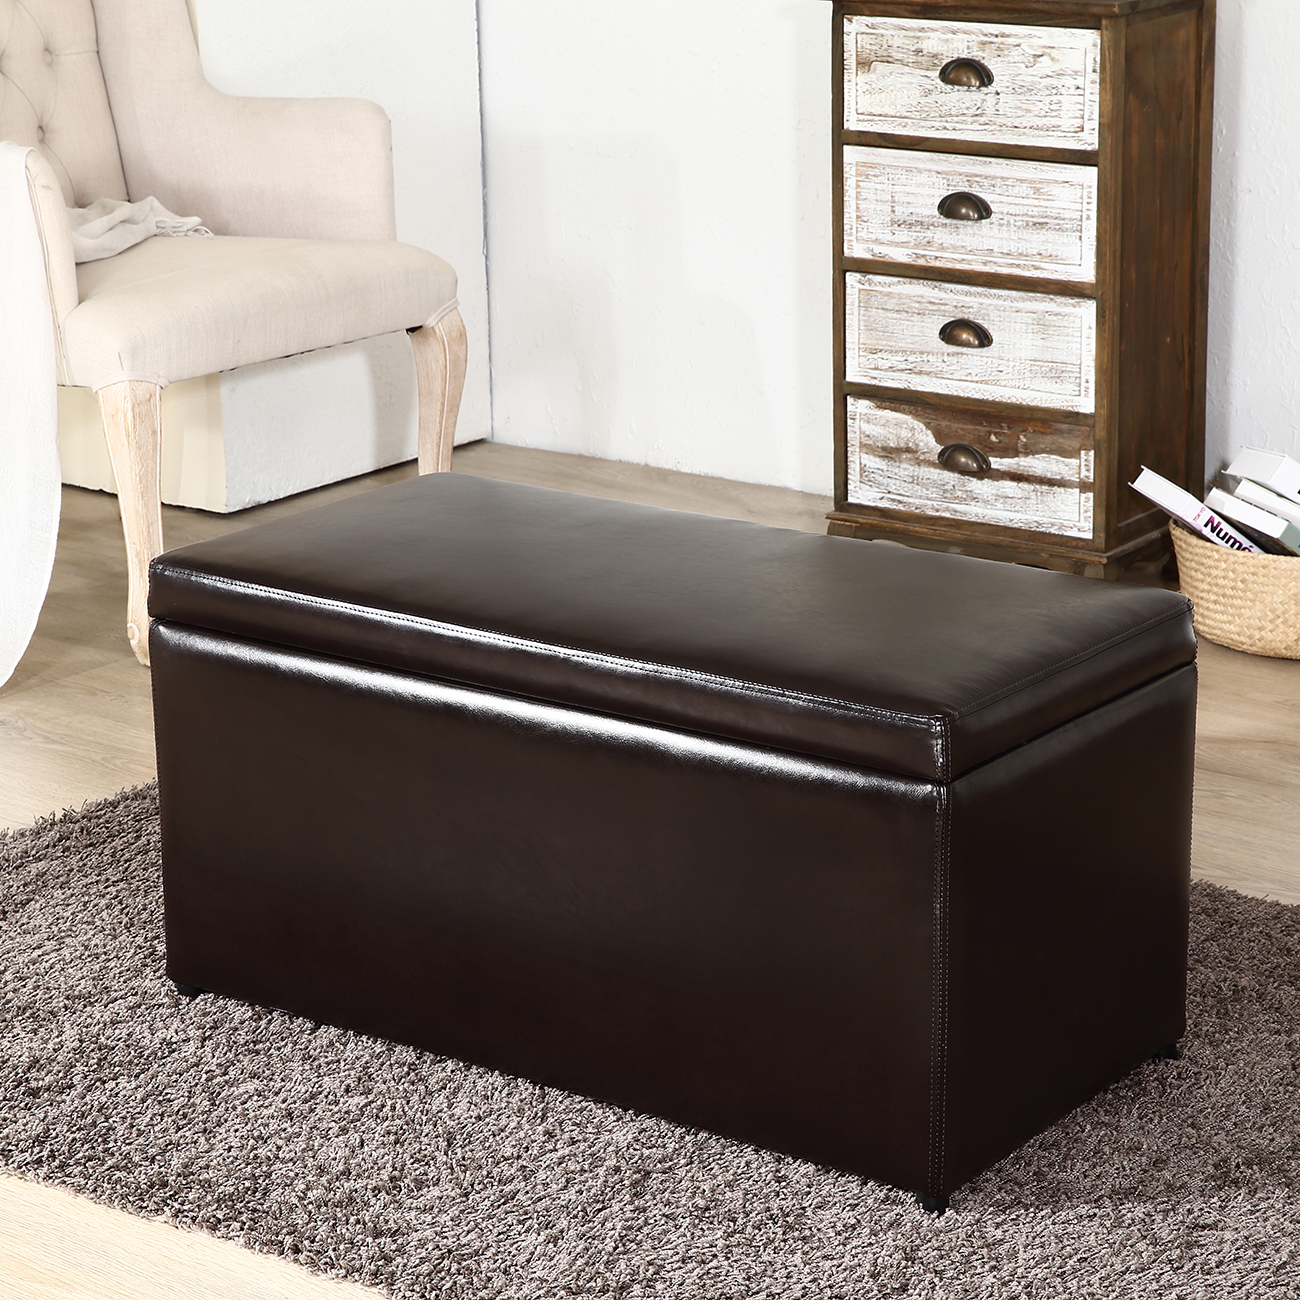 Coffee Table With Lid 3pc Ottoman Bench Storage Lid Tray Footrest Coffee Table